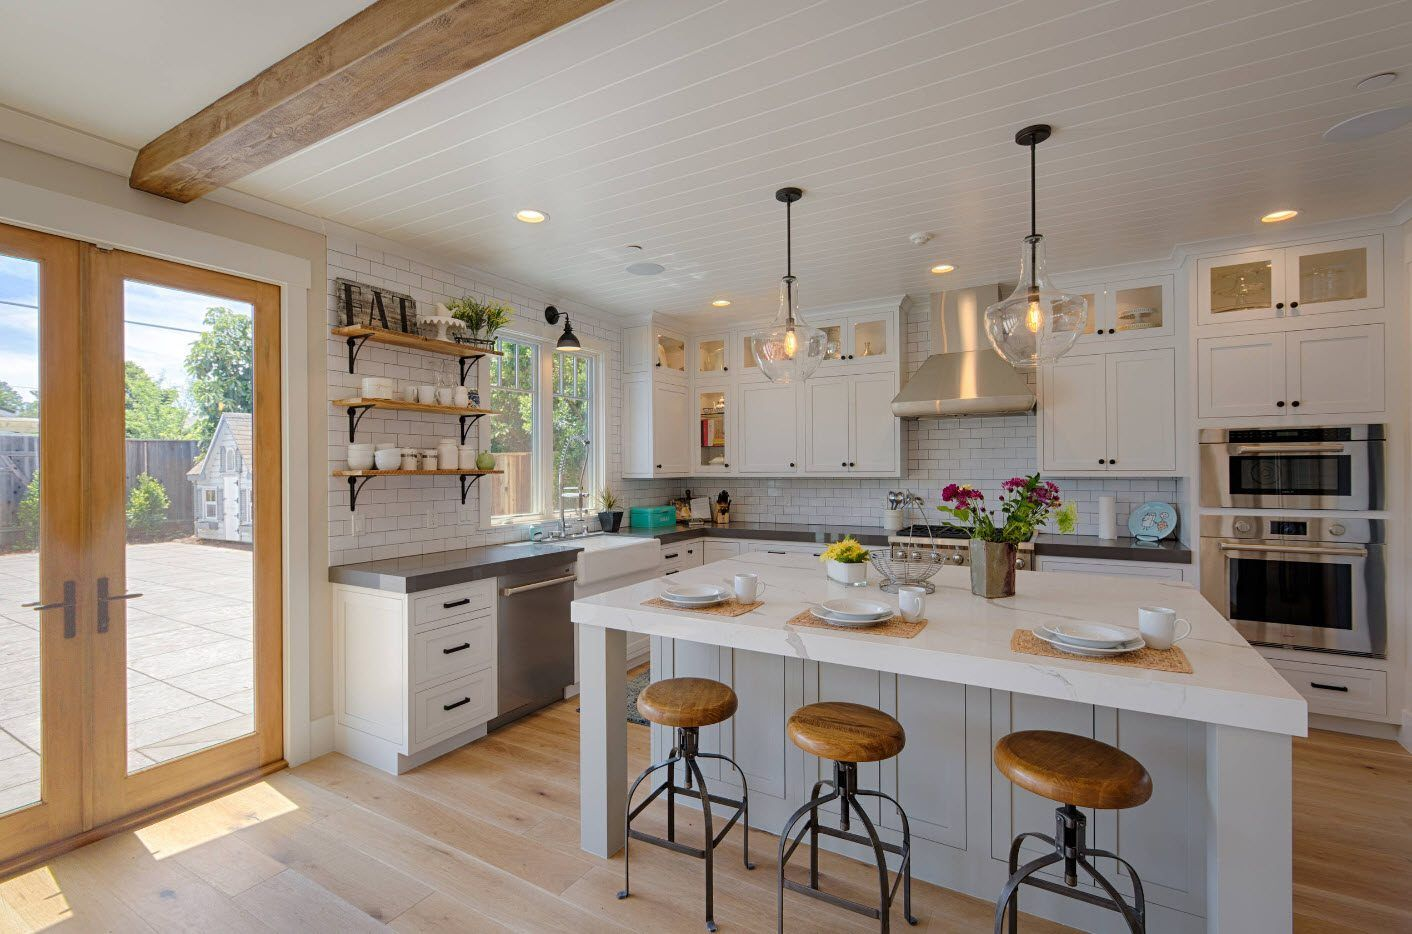 160 Square Feet Kitchen Design Ideas. Classic designed kitchen with open wooden ceiling beam and car stools